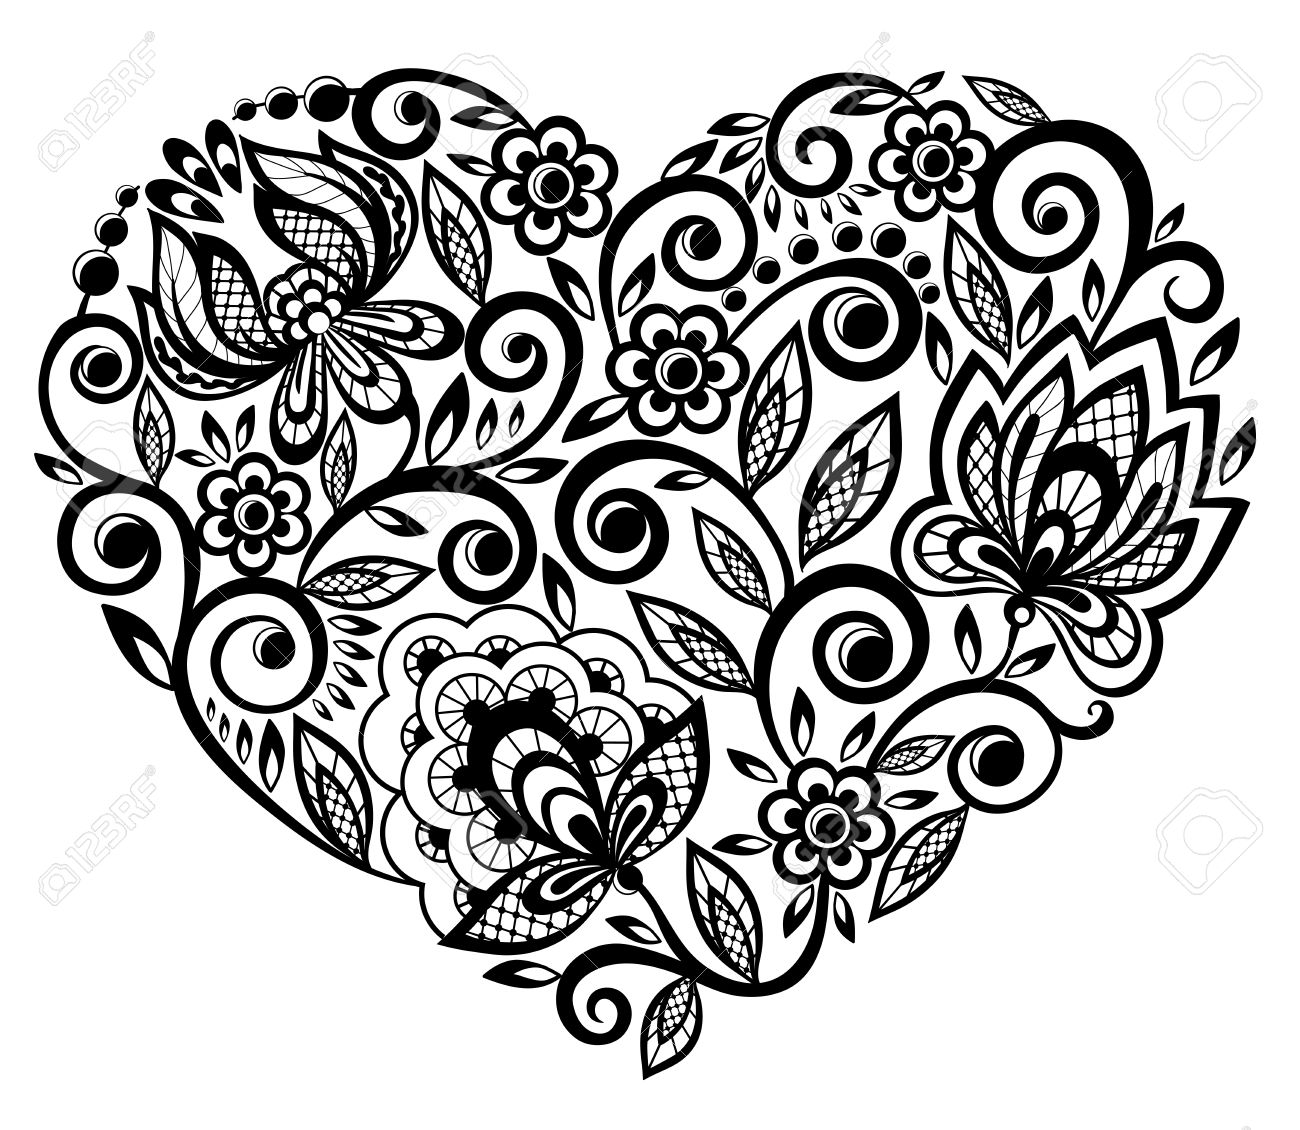 beautiful silhouette of the heart of lace flowers - 18276277